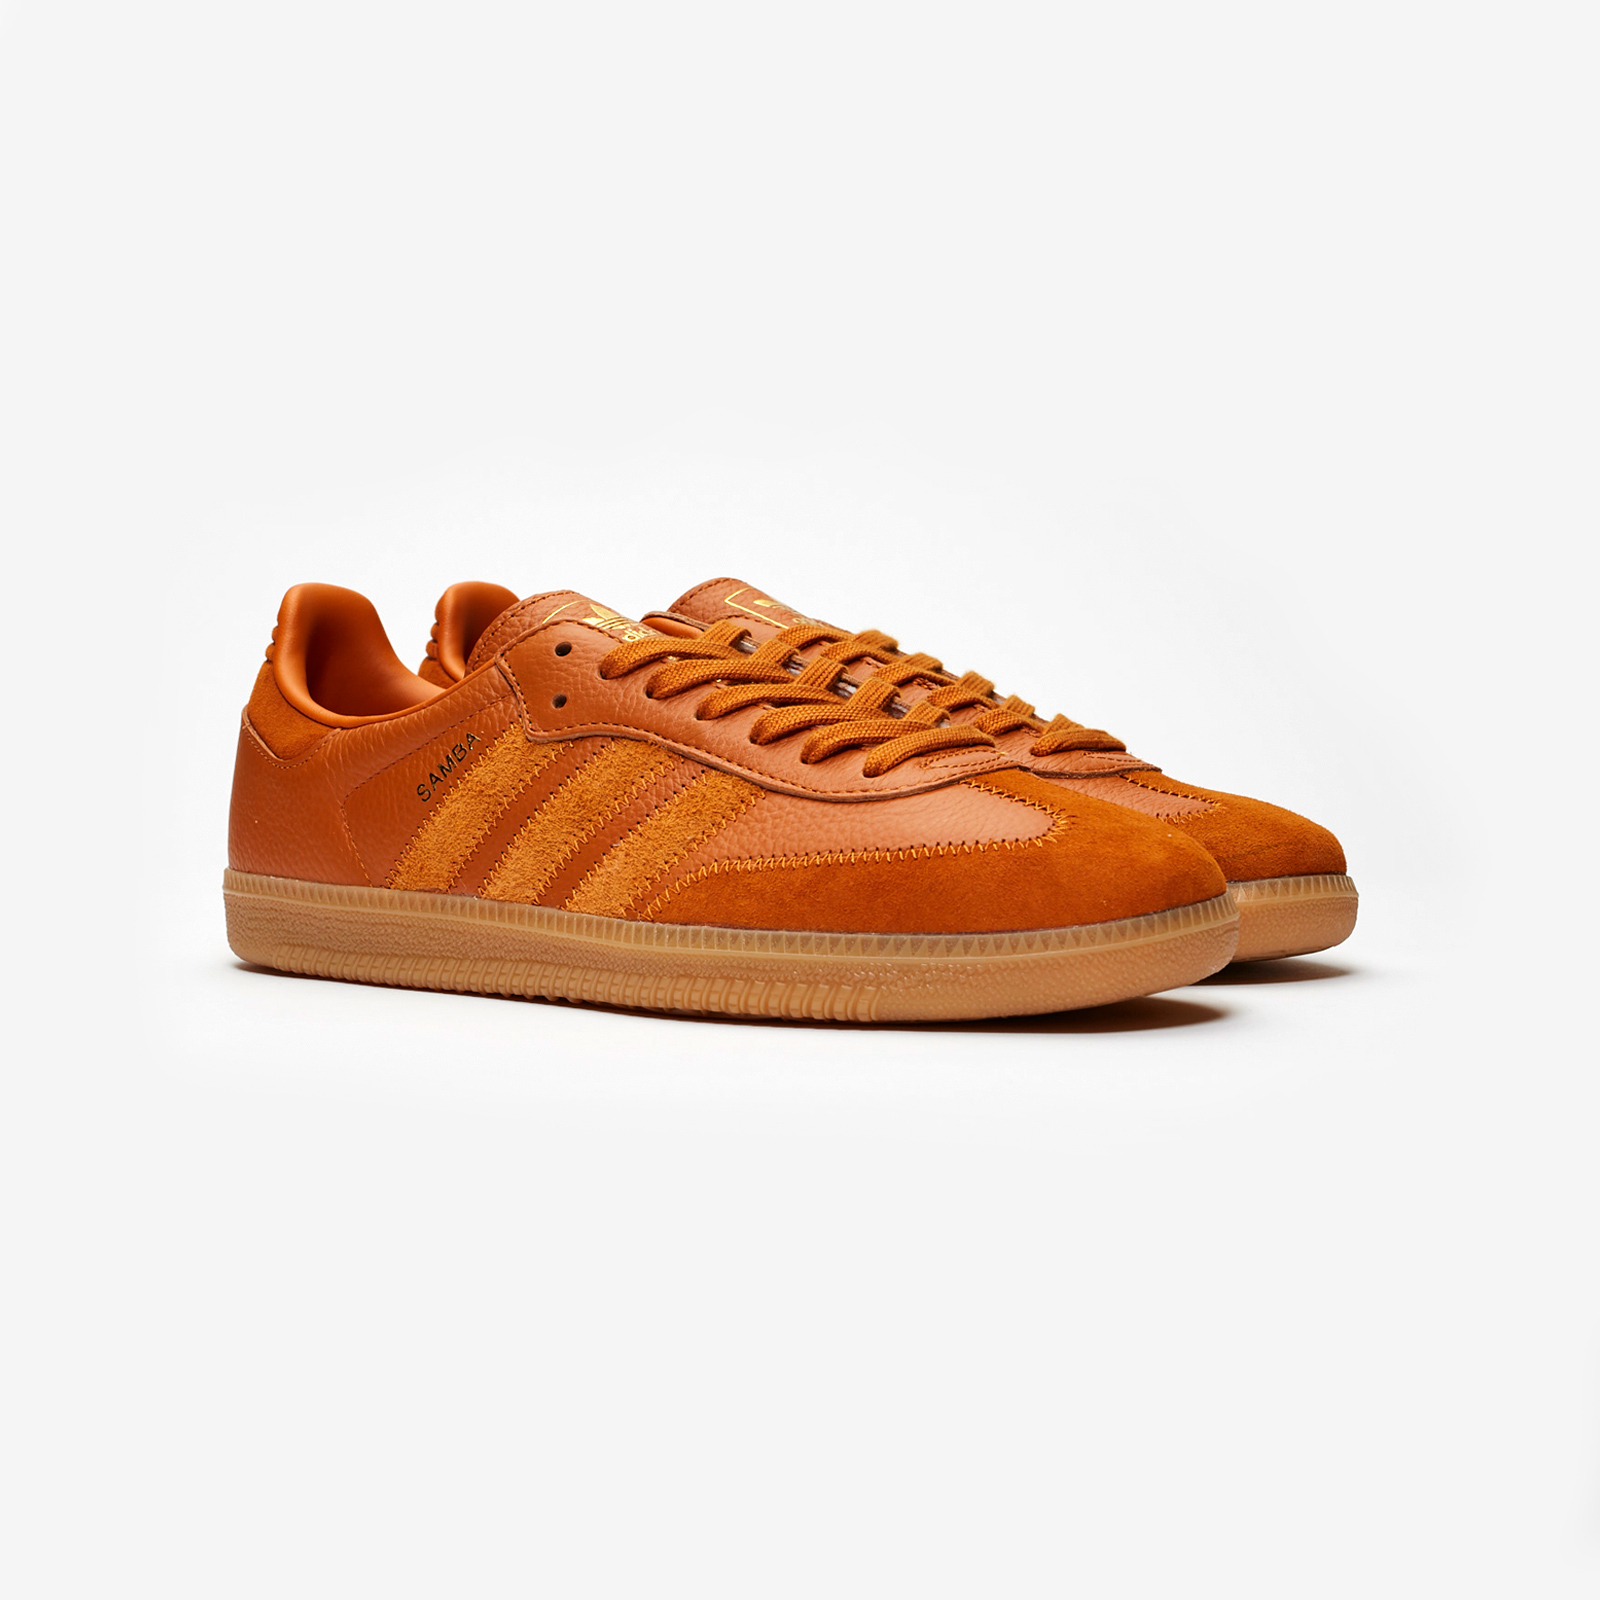 most popular best quality release date adidas Samba OG FT - Cg6134 - Sneakersnstuff | sneakers ...